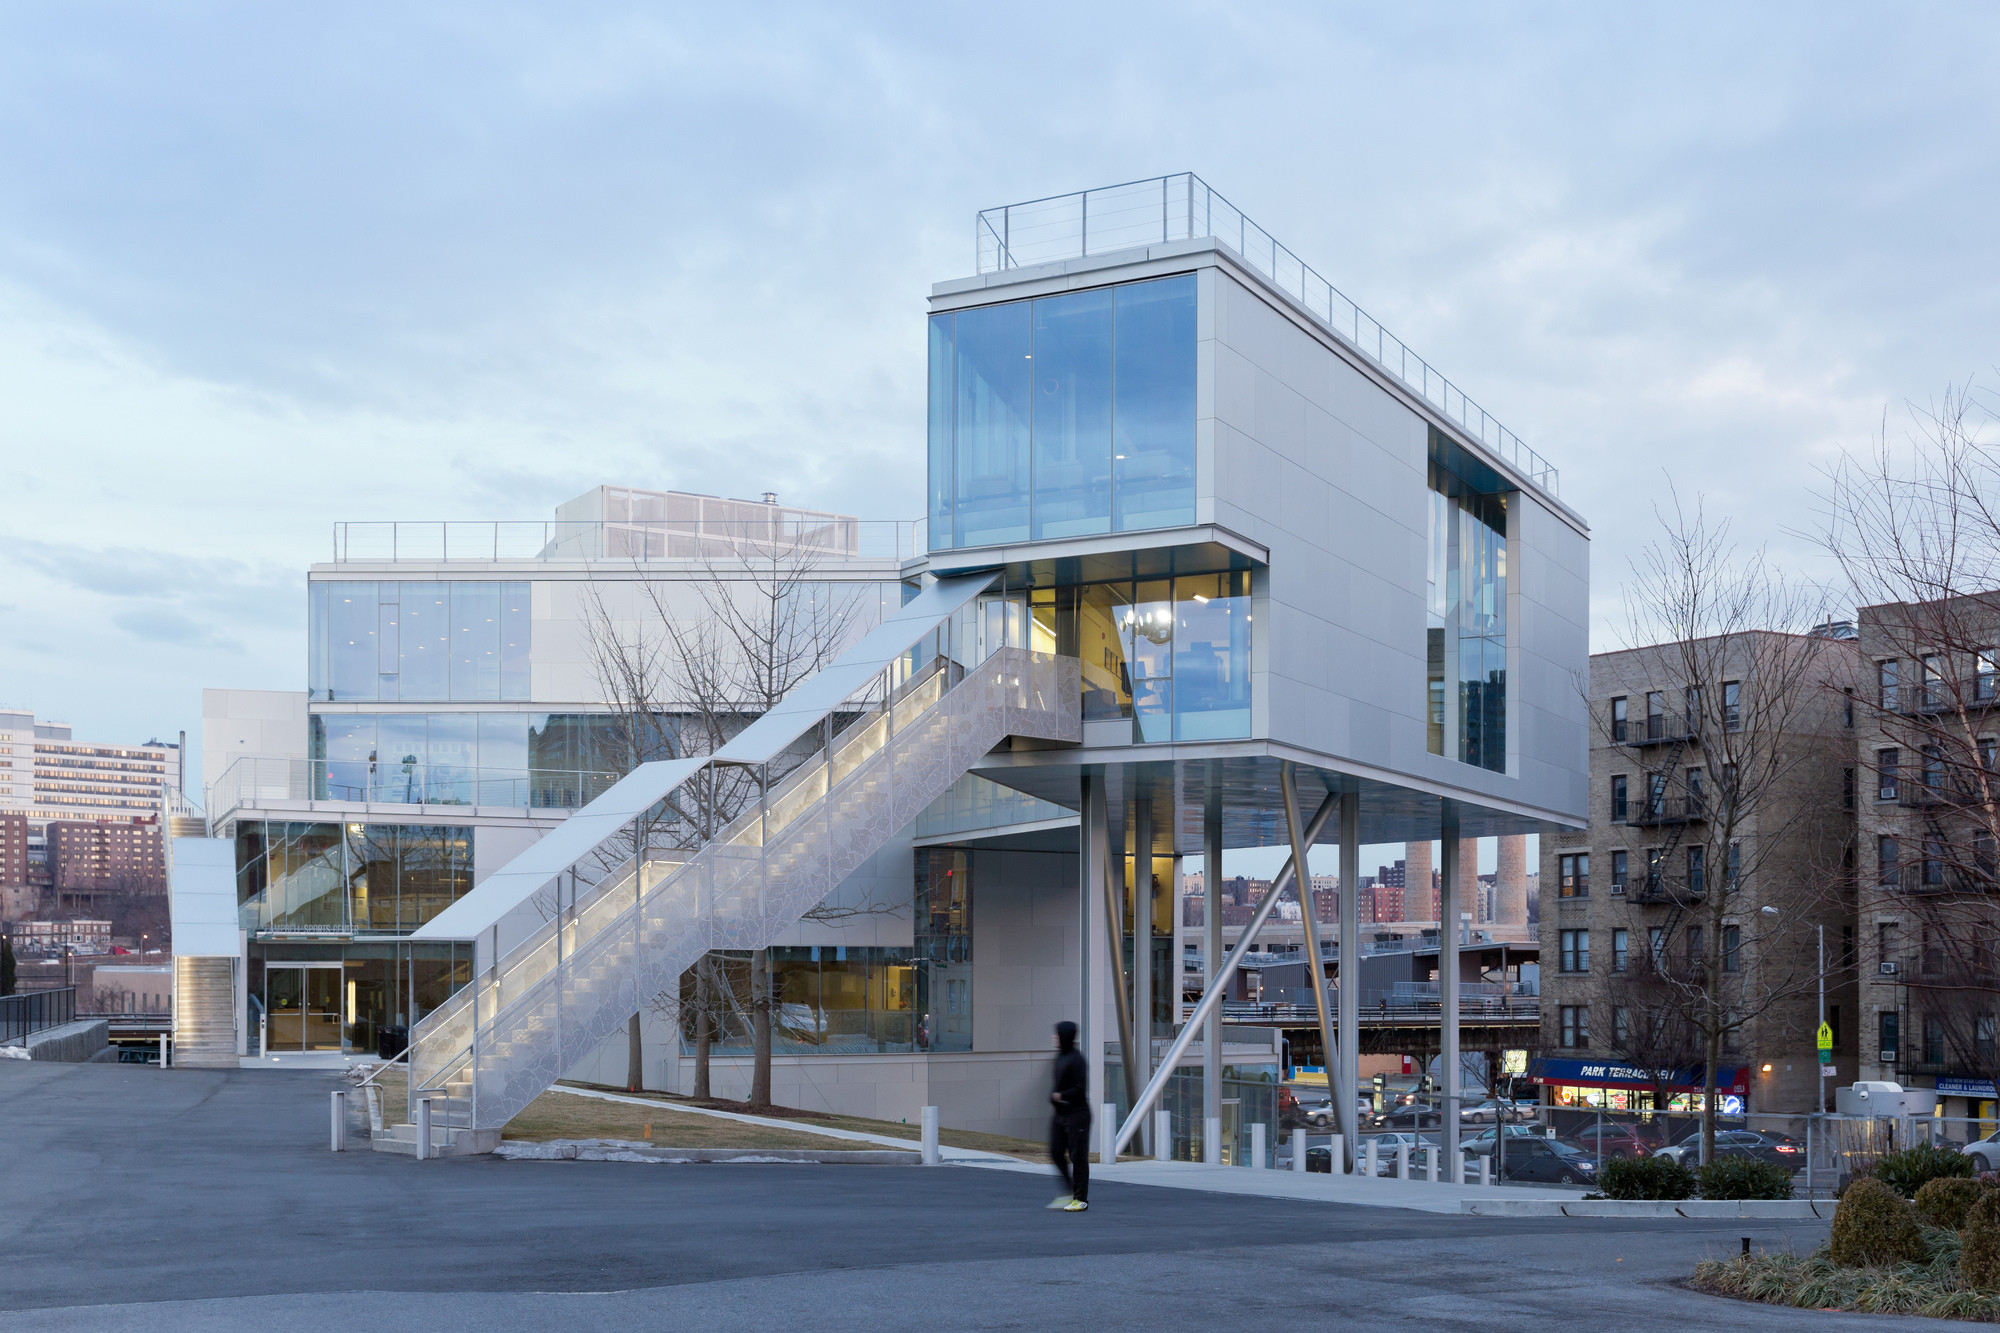 Campbell Sports Center - Columbia University (New York, NY) / Steven Holl Architects © Iwan Baan